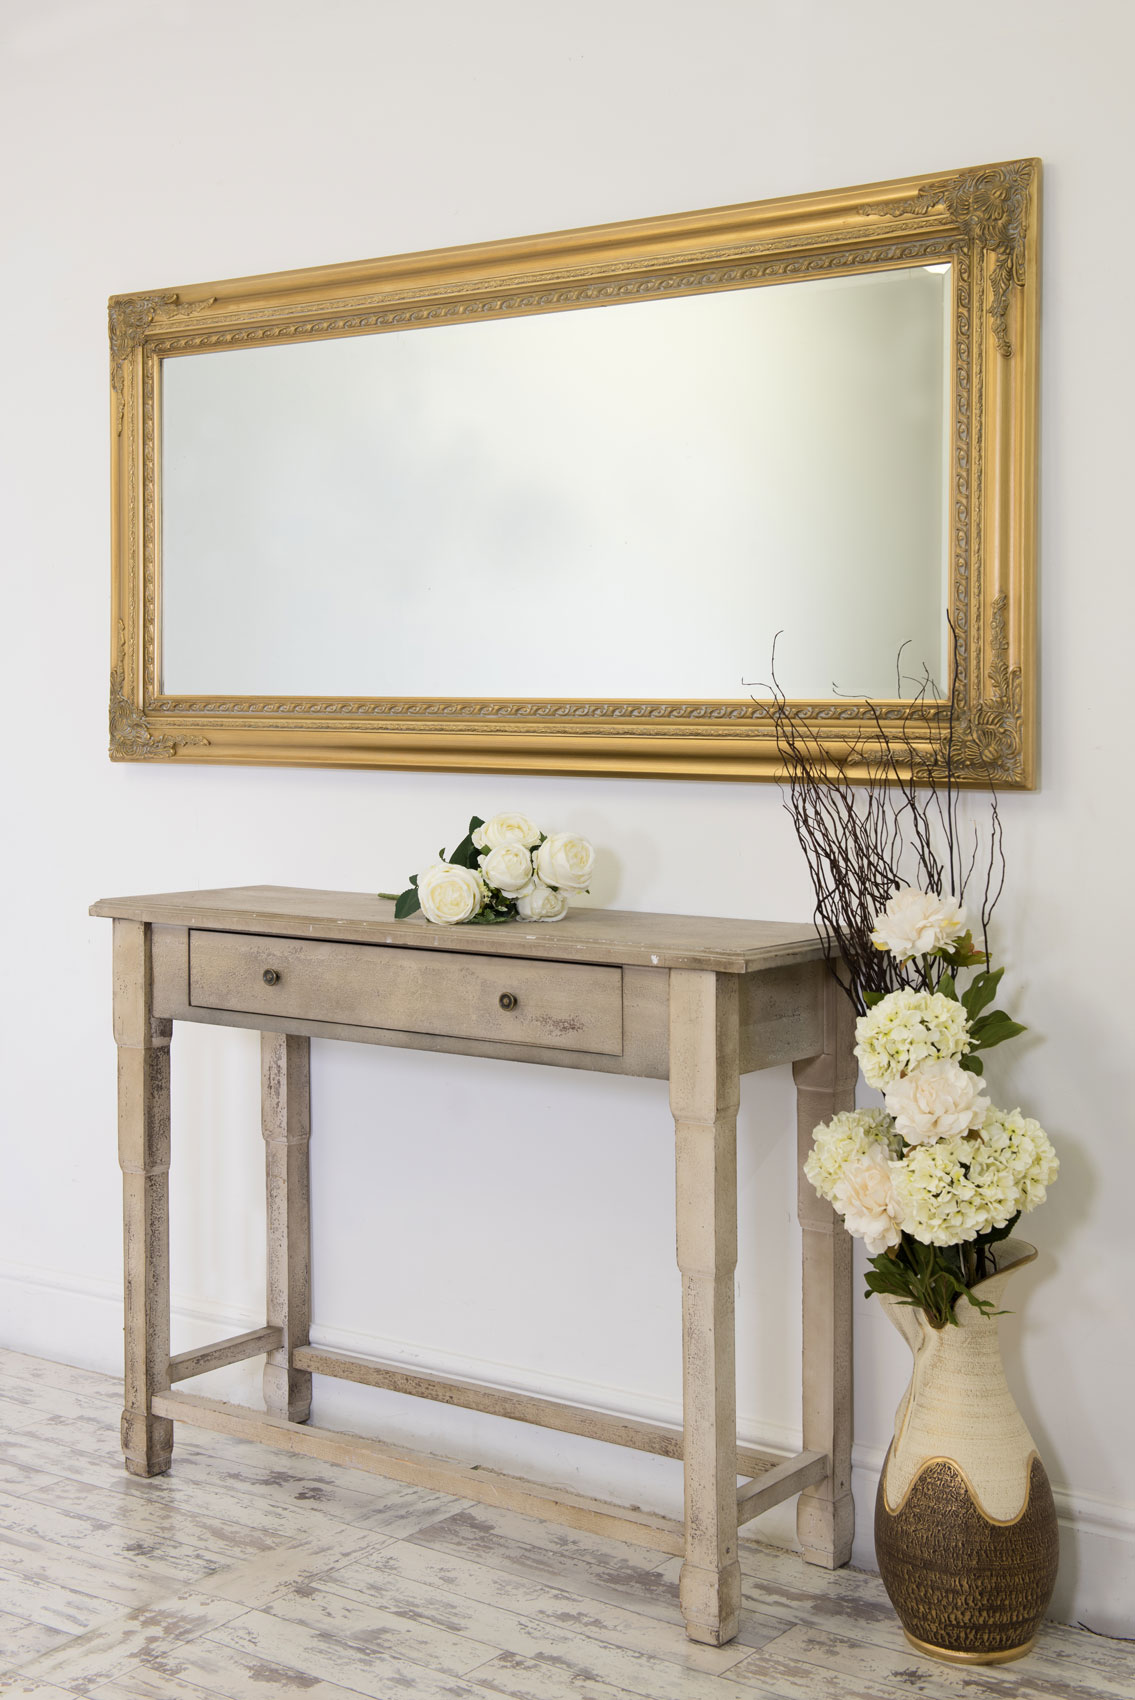 Large Gold Antique Style Wall Mirror Wood 5Ft10 X 2Ft10 ...